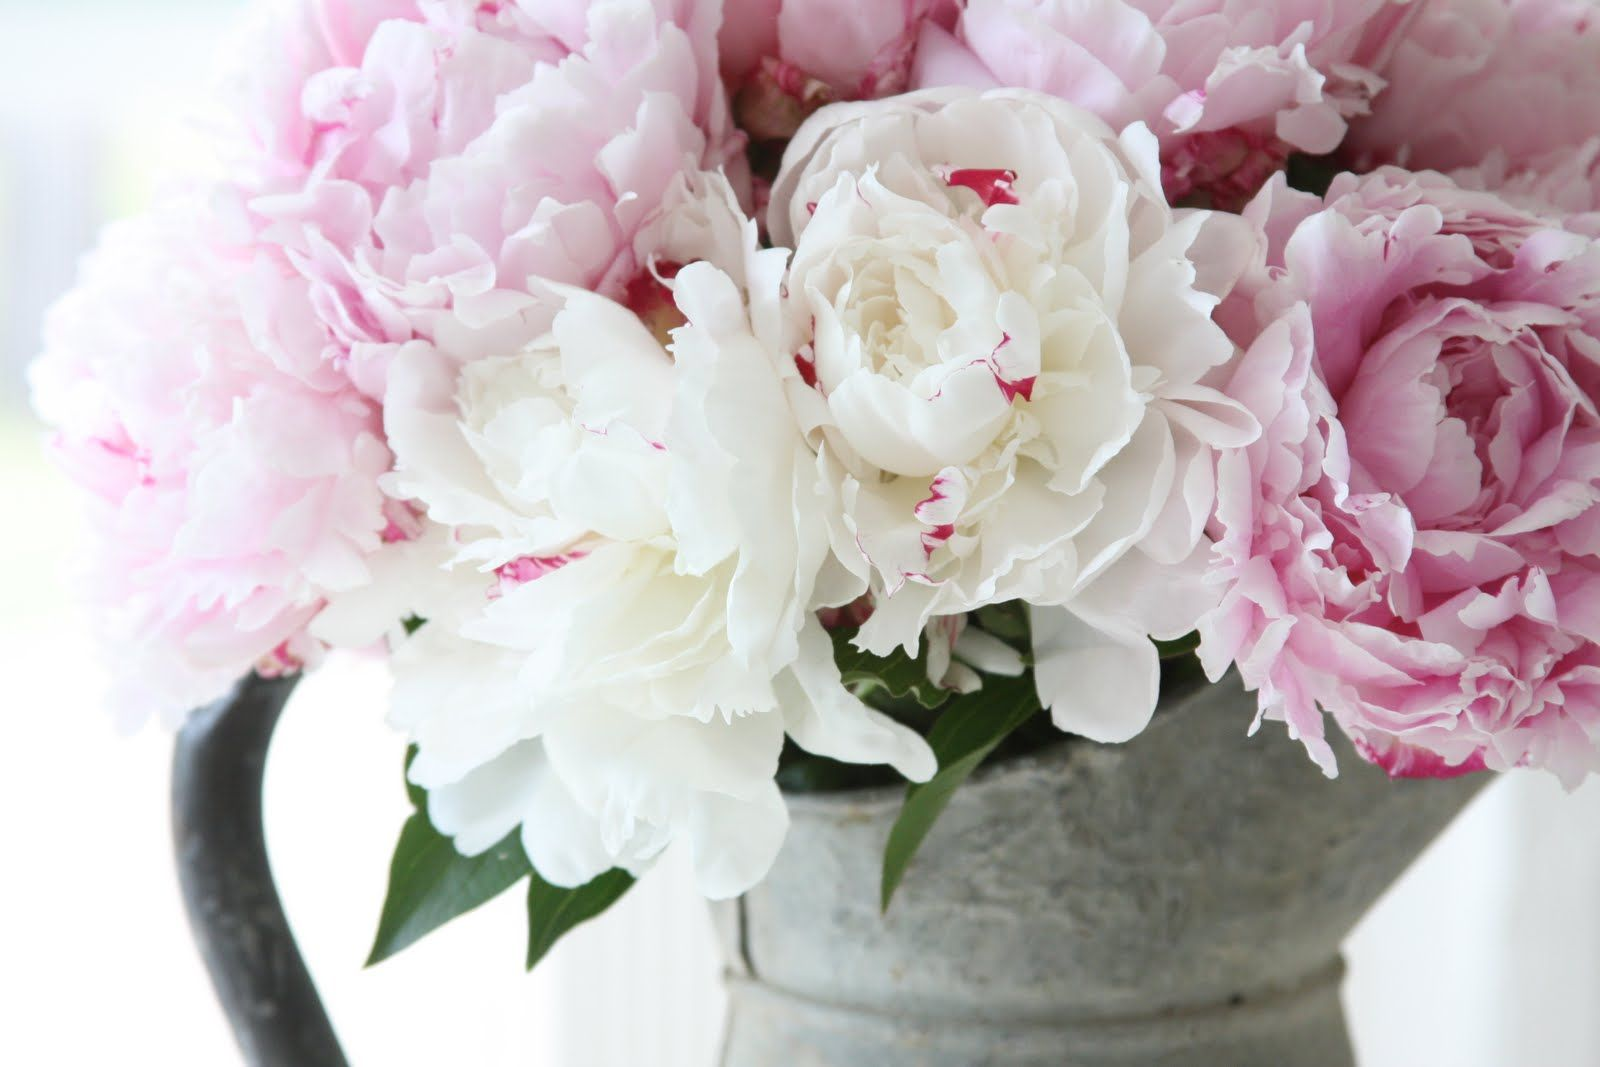 I love peonies!!!  I've never had any luck growing them though :(